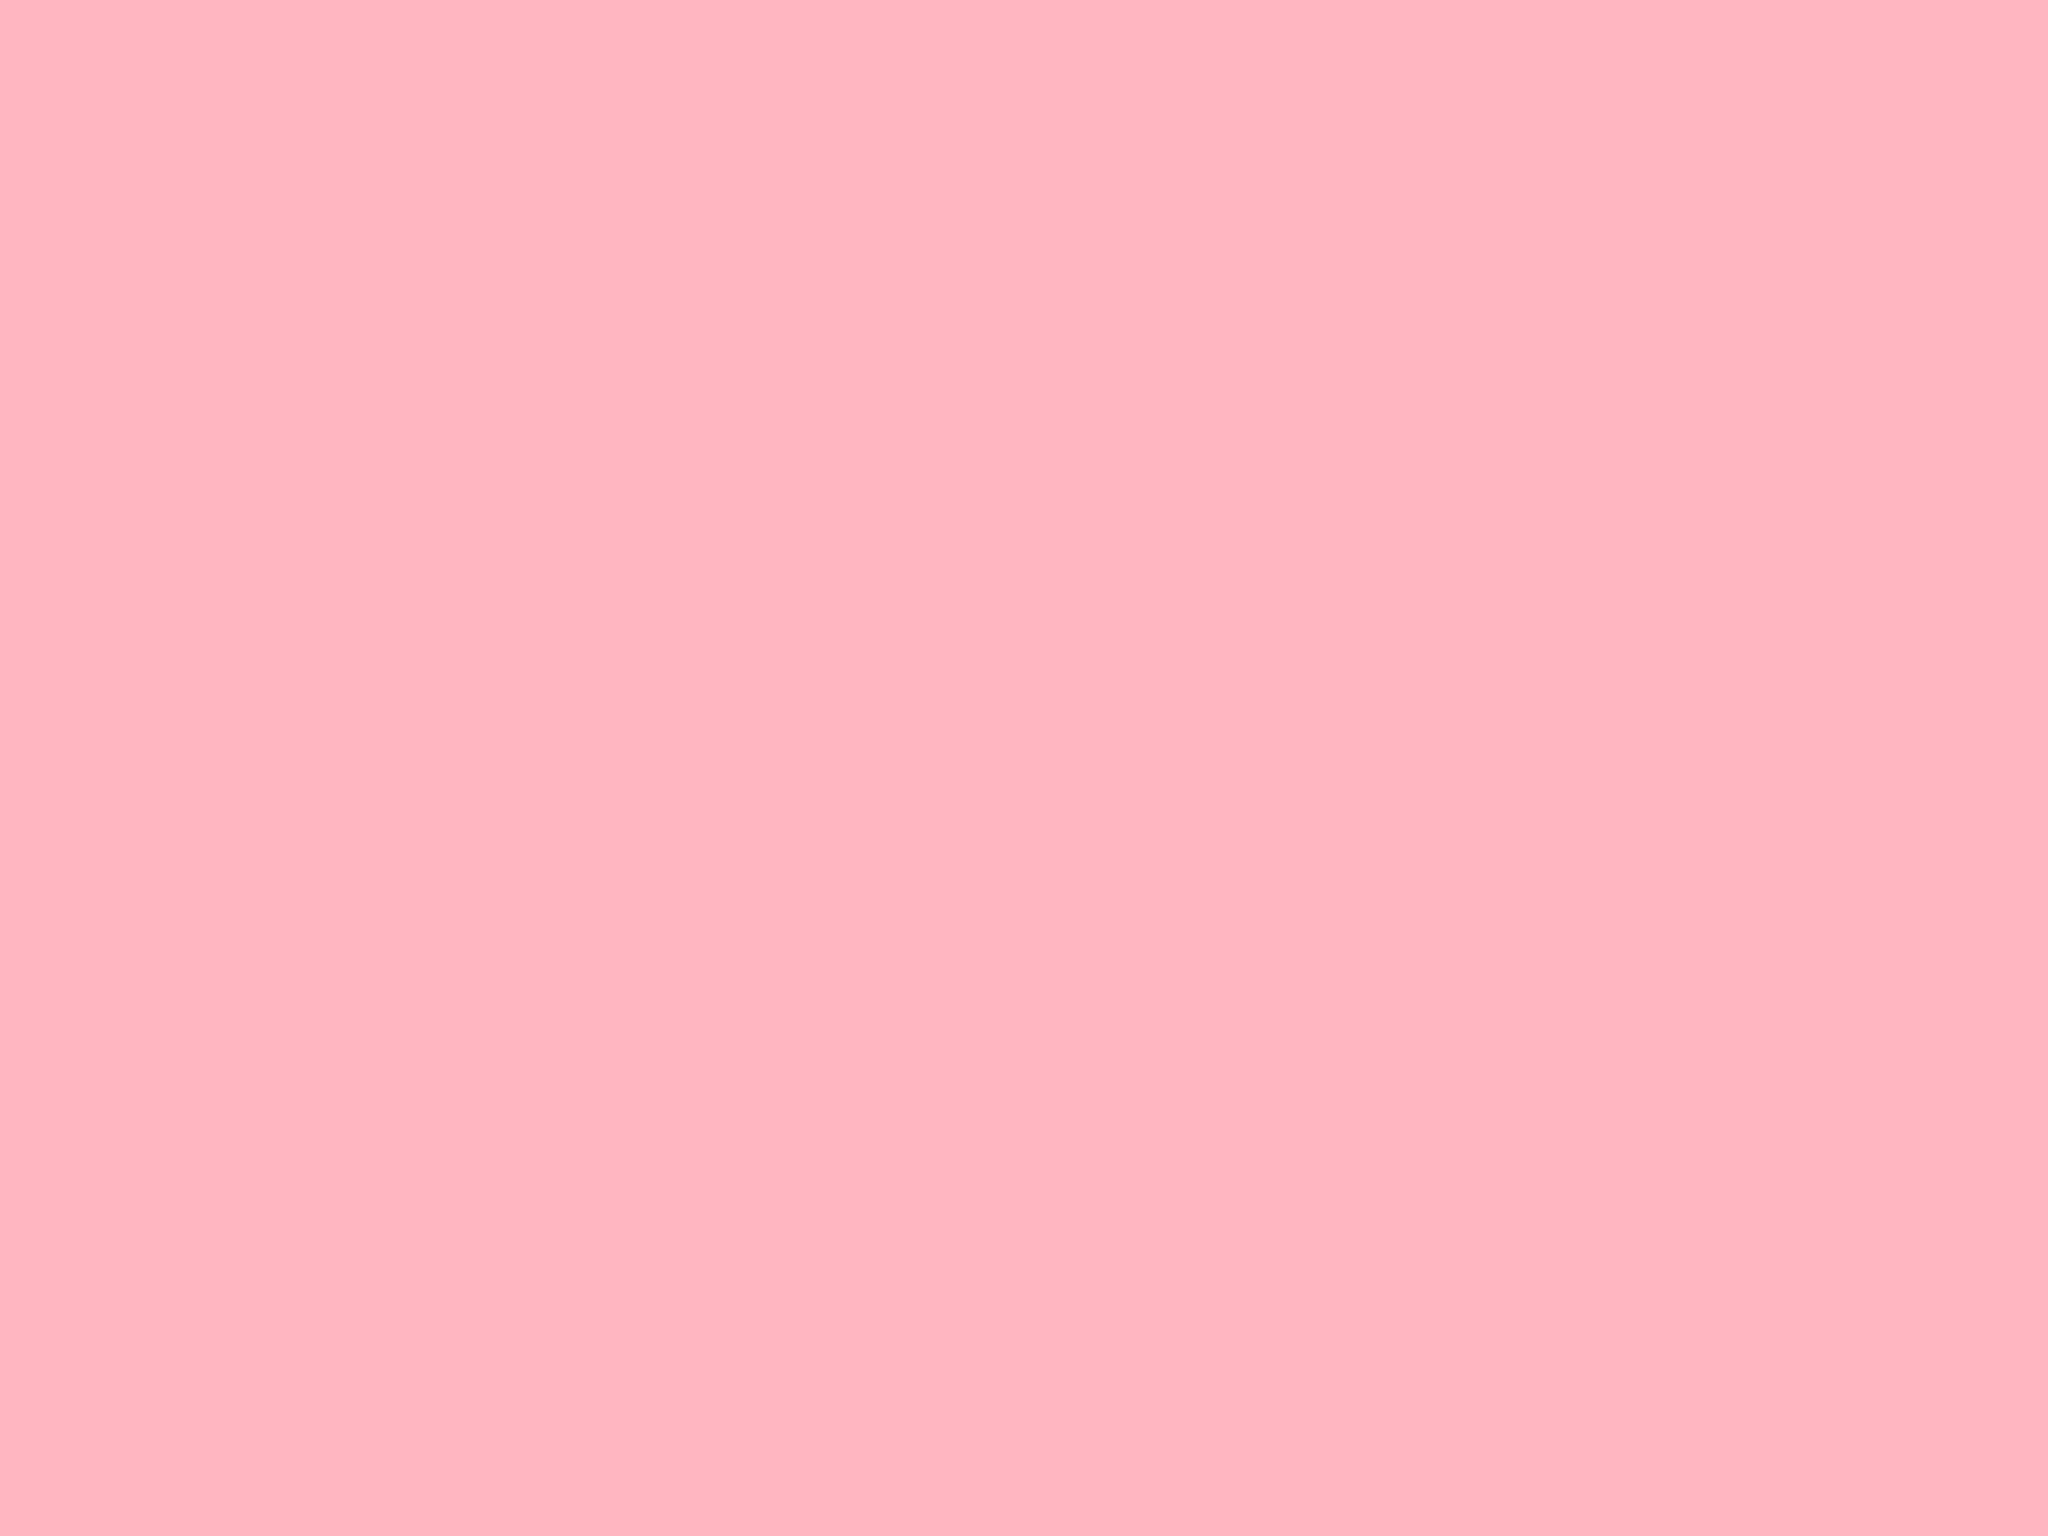 Solid Light Pink Background Tumblr Solid light pink background 2048x1536